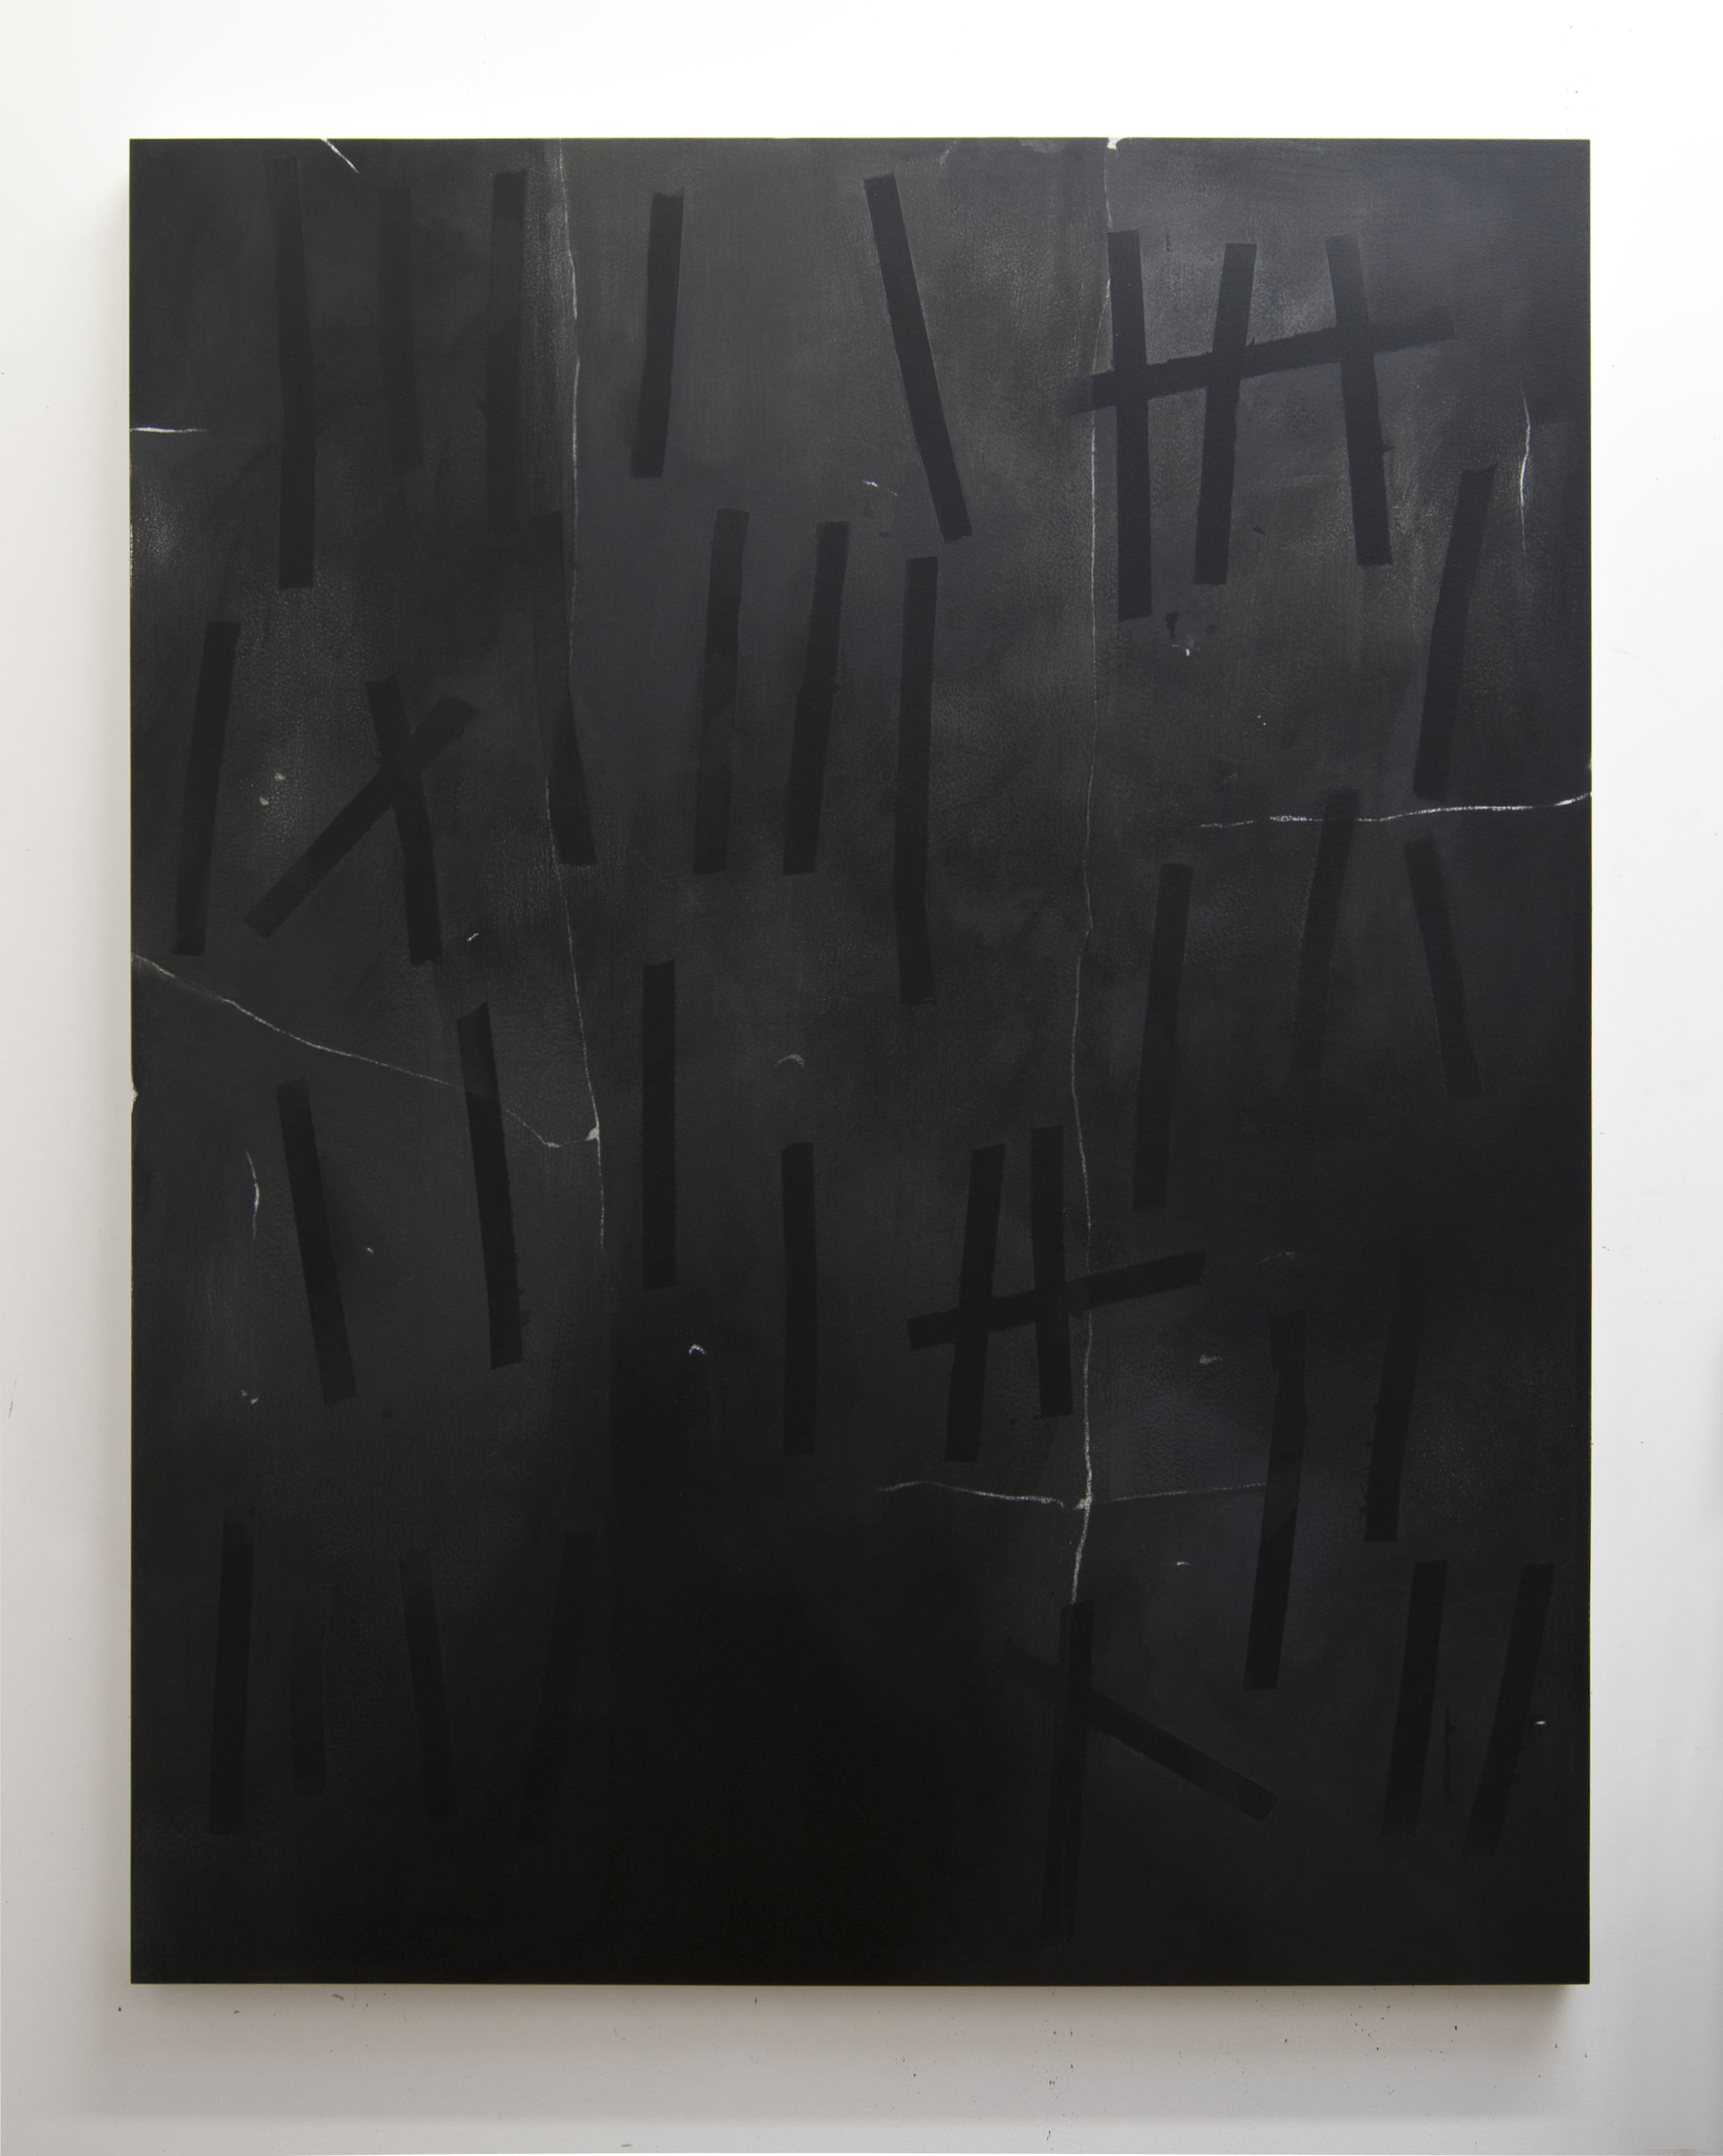 Cold Numbers, 2015  Acrylic on panel, 56 x 44 inches